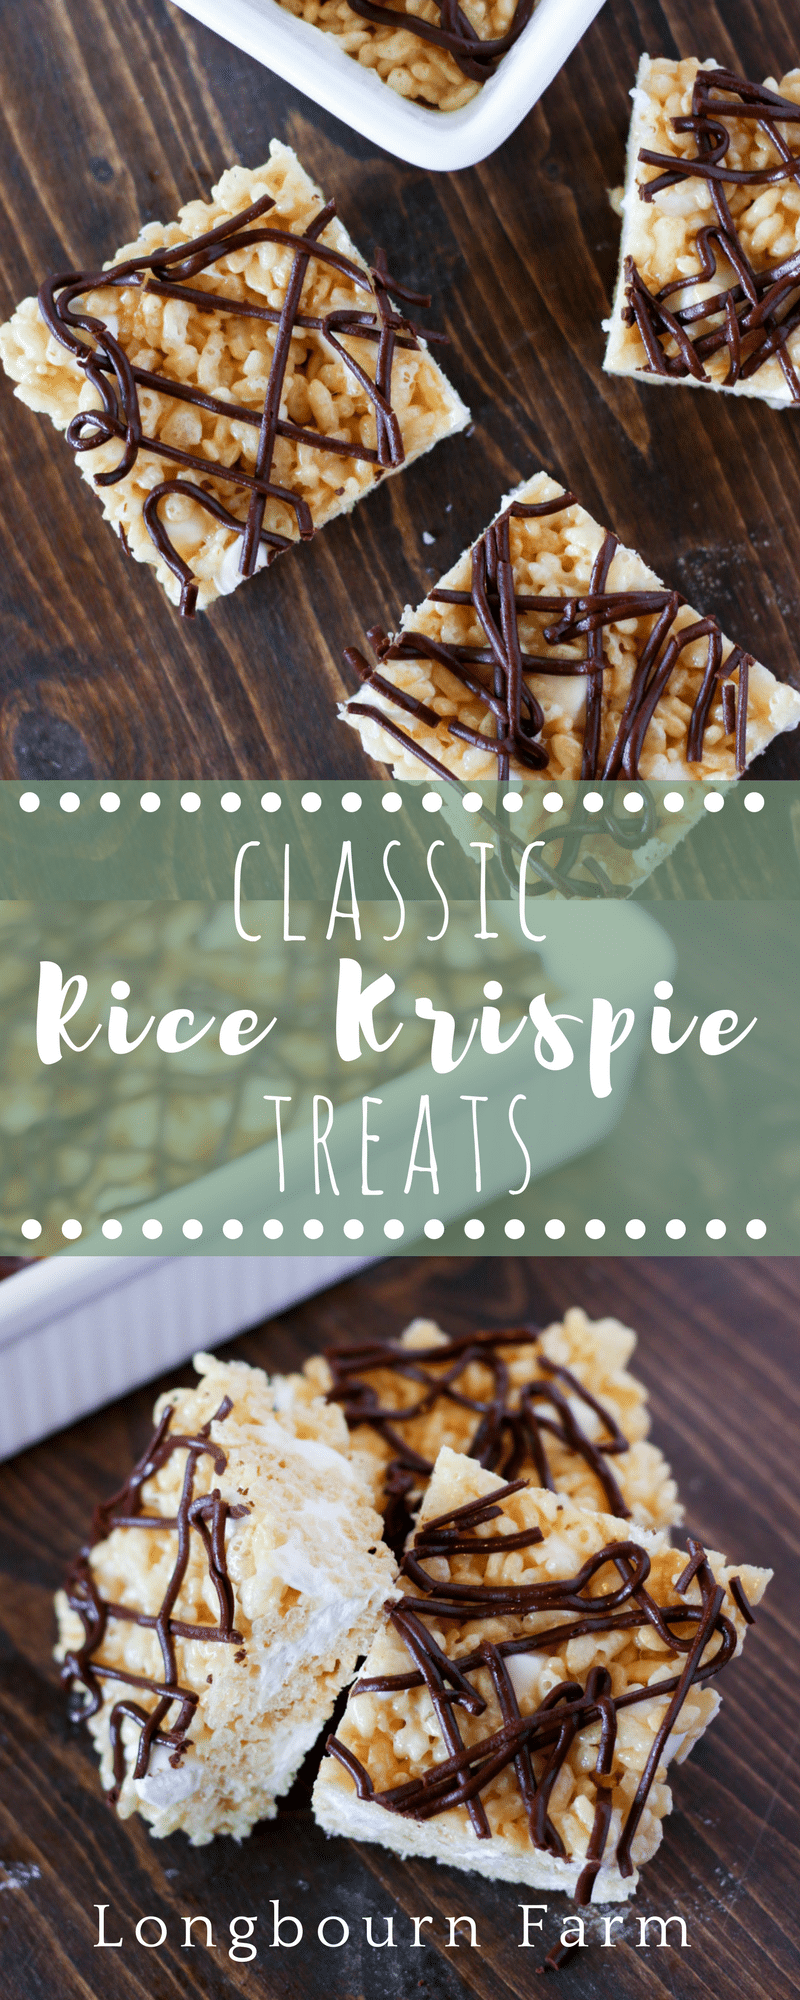 These rice krispie squares are is perfect for summer! Classic, easy, and no baking required. Some twists to the original will make them a hit! via @longbournfarm